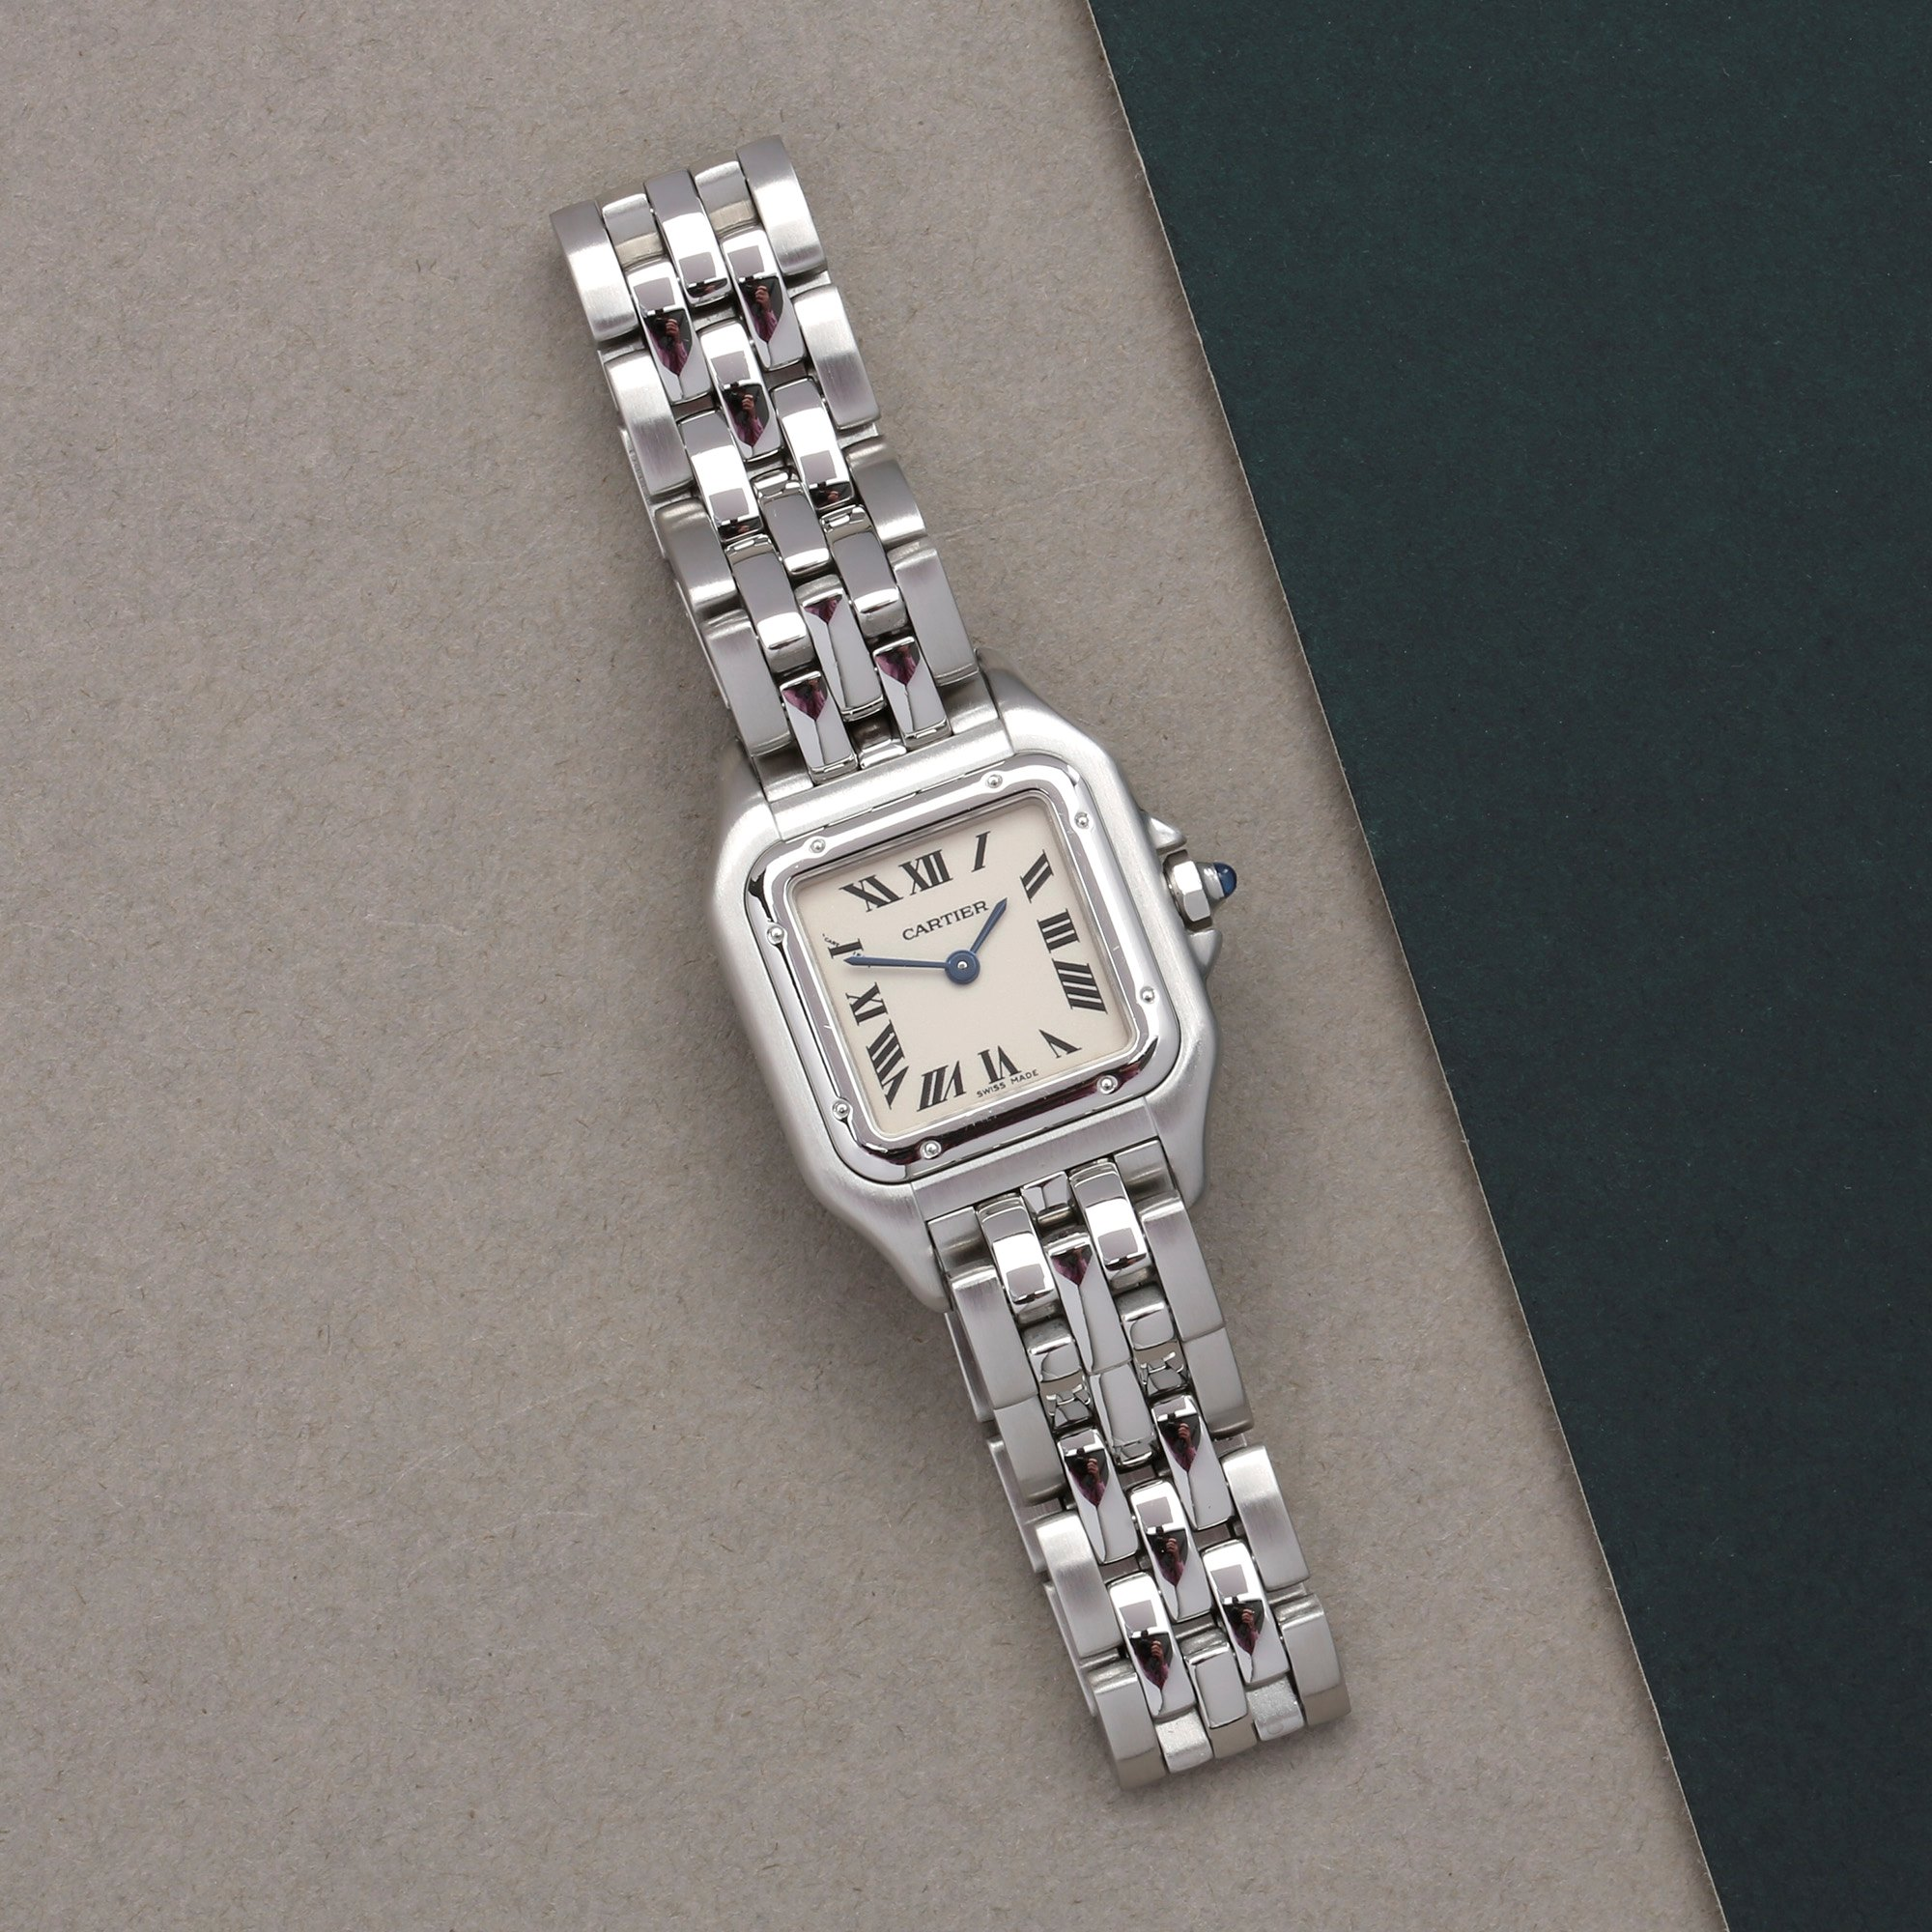 Cartier Panthère 1320 Ladies Stainless Steel Watch - Image 10 of 10